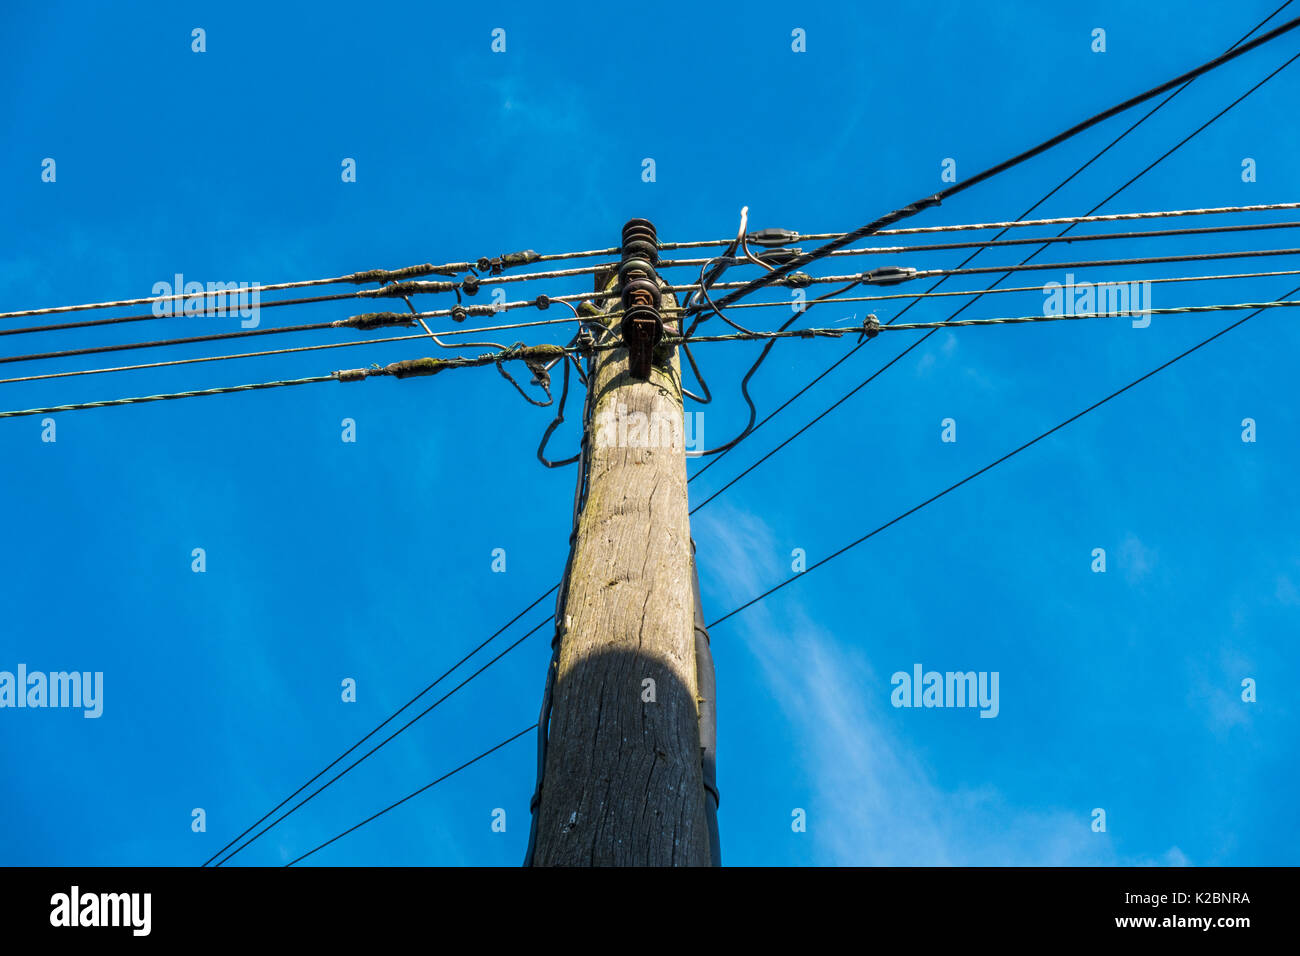 A familiar, traditional, sunlit telegraph pole and telephone cables, viewed from below, against a clear blue sky. Langtoft, Lincolnshire, England, UK. - Stock Image